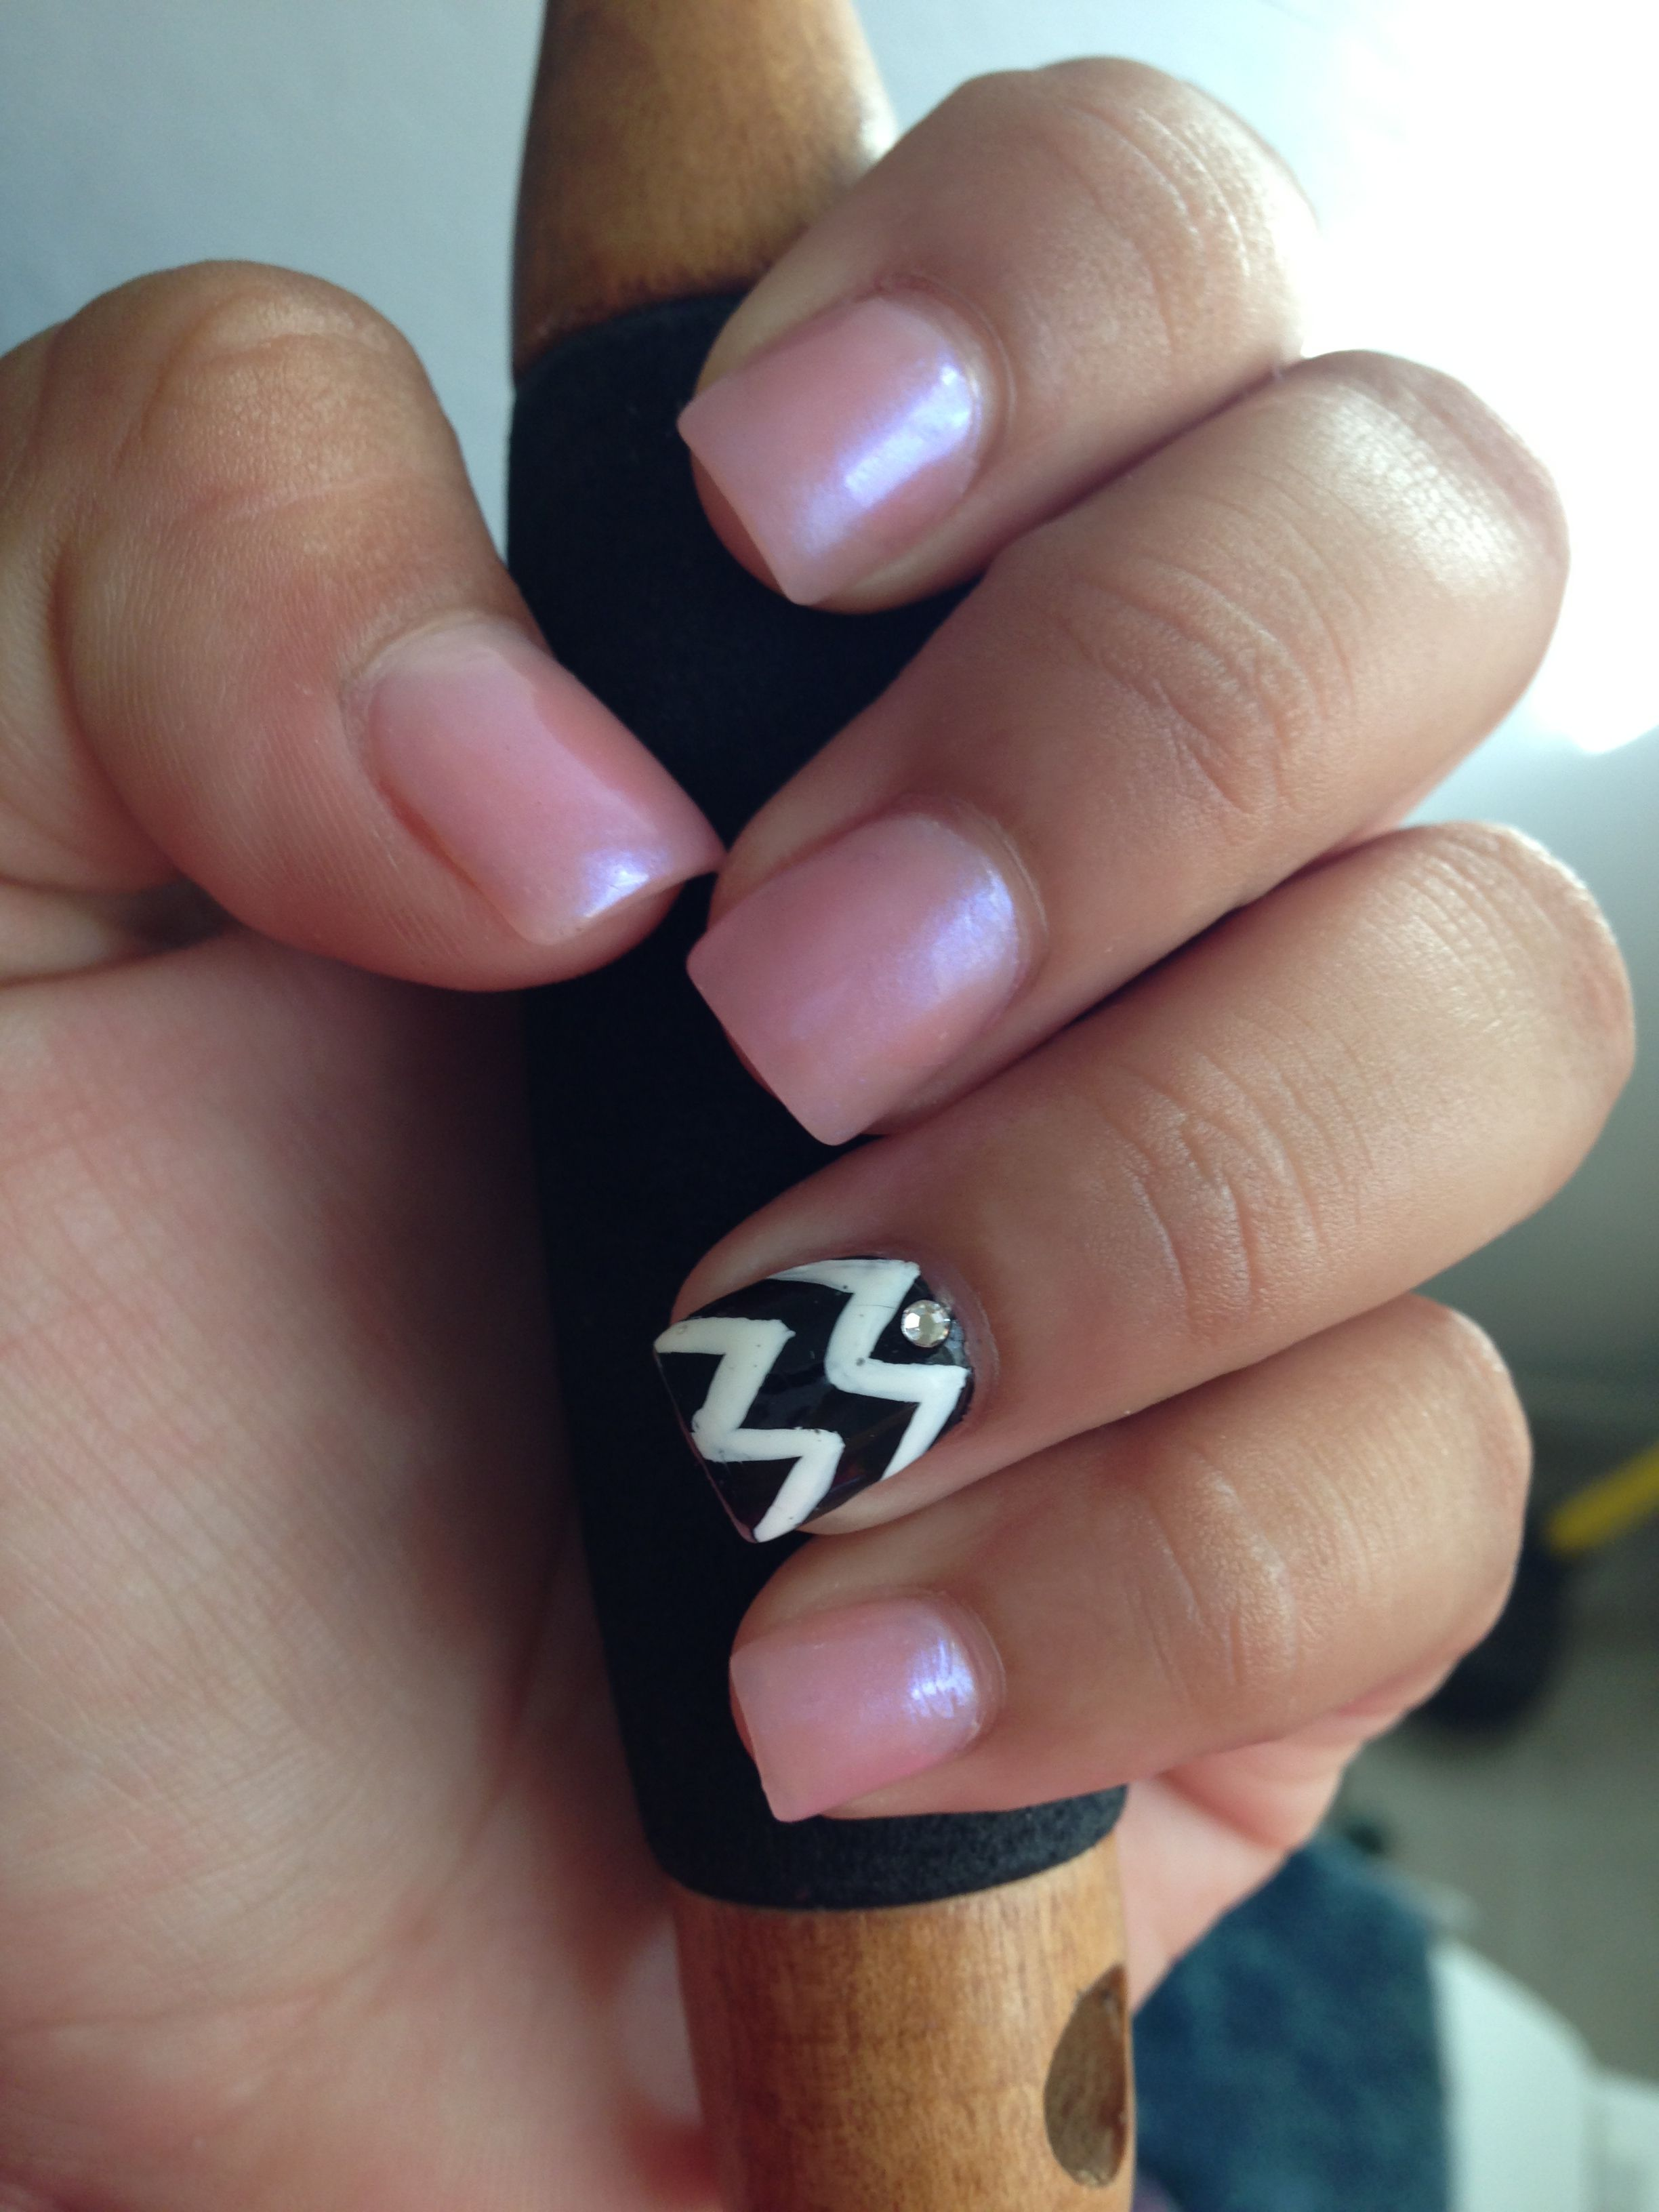 Short pink cotton candy nails with black and white nail design